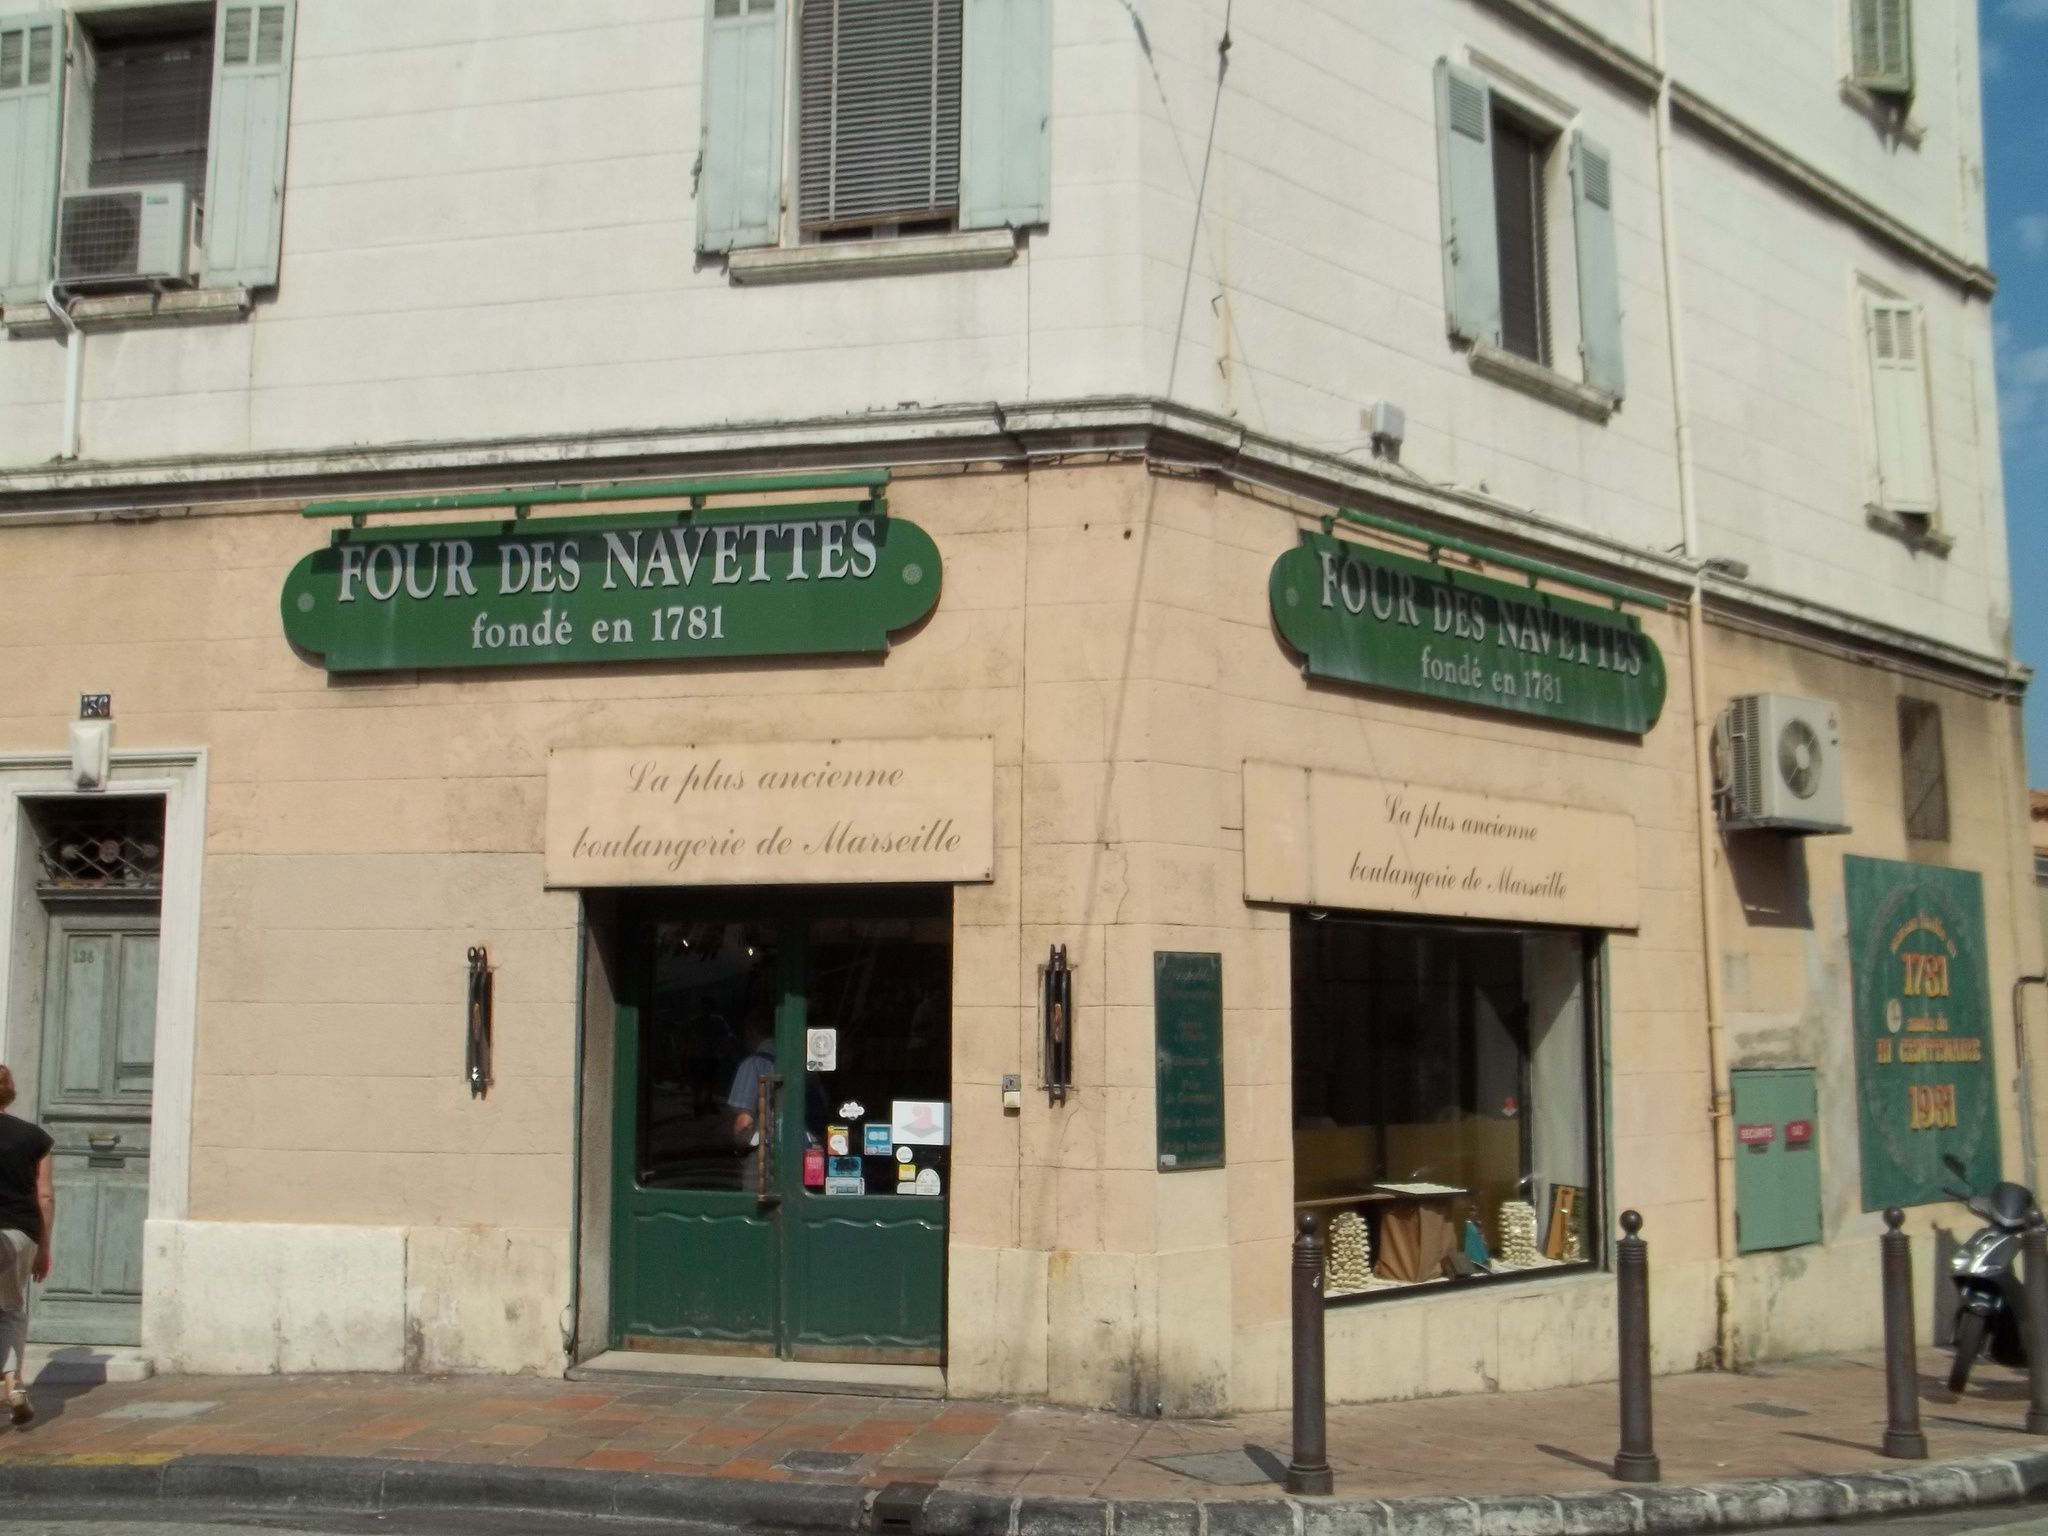 SHOPPING. Four Des Navettes. The Four des Navettes, beside the Abbaye de Saint-Victor, has been baking the navette continuously since 1781.